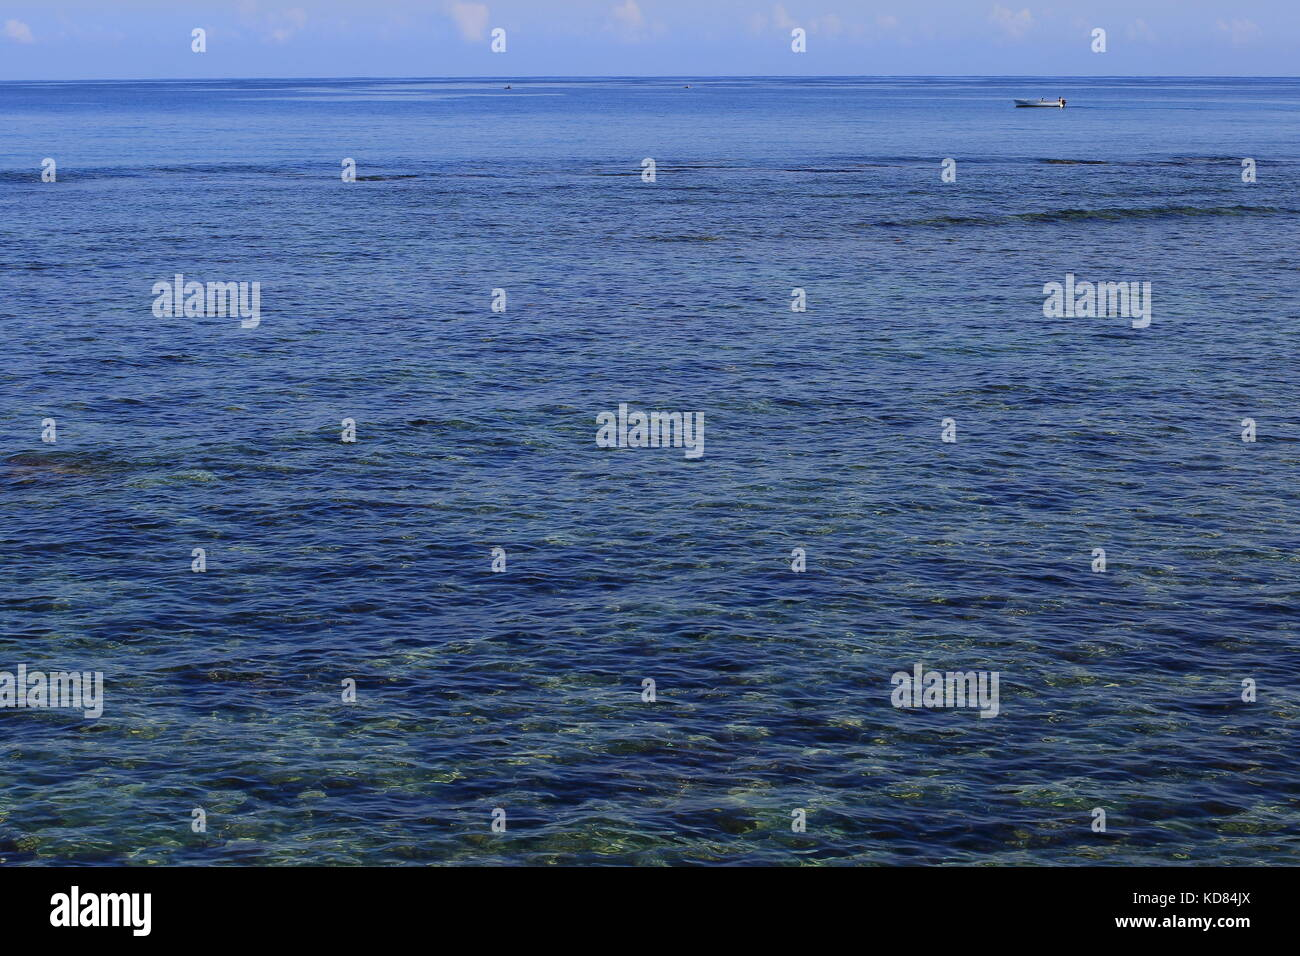 A Small White Boat Adrift In Big Blue Ocean Landscape Format With Copy Space